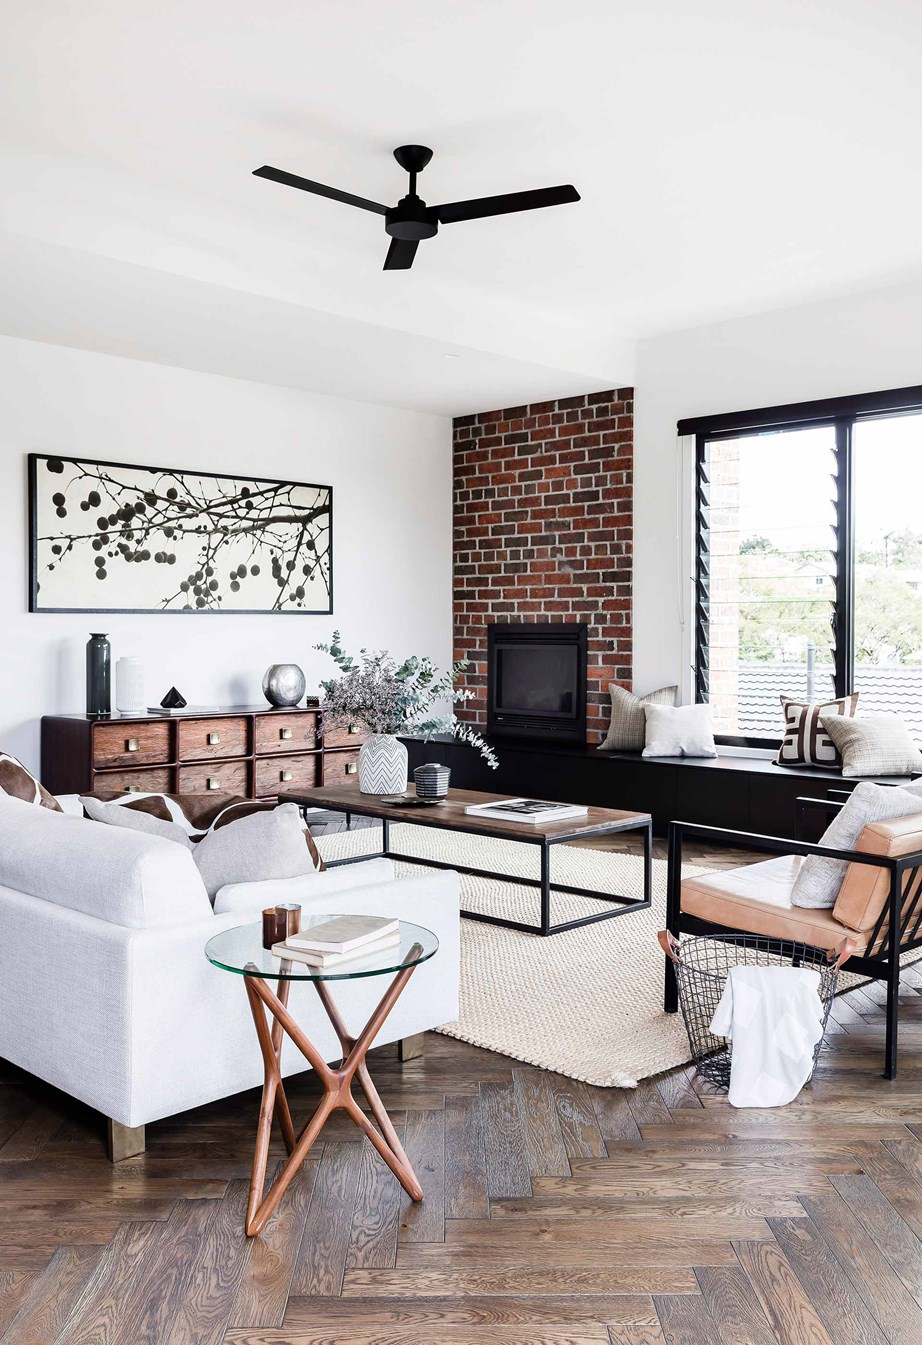 The furniture in this cosy living room is orientated toward both the brick fireplace and the louvre windows.